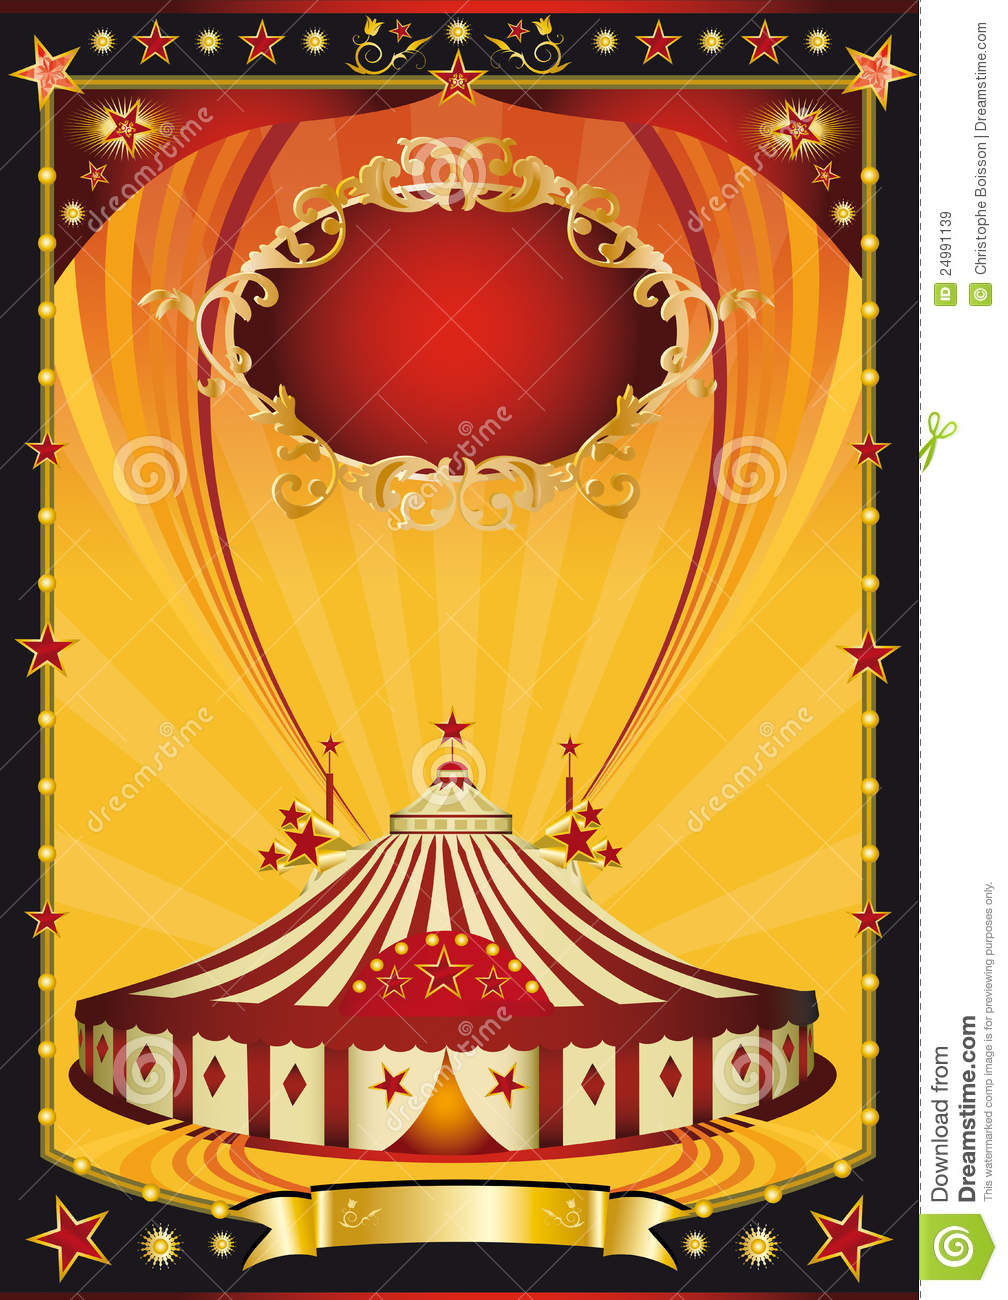 Nice orange and black circus poster stock vector for Circus posters free